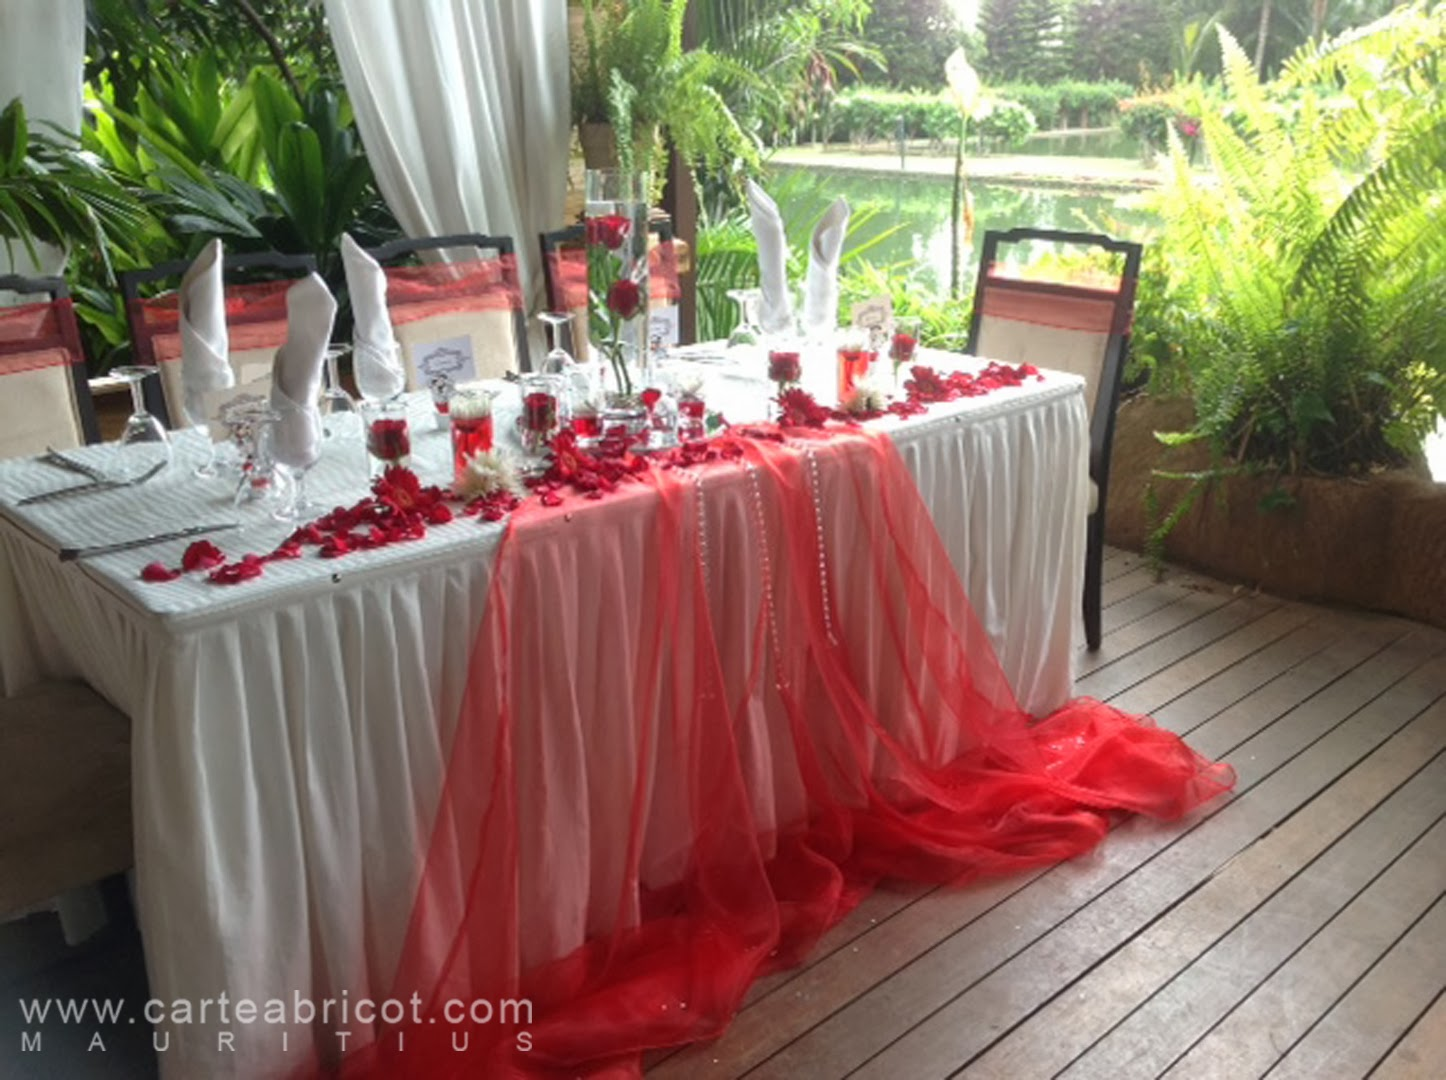 La Table Rouge Mariage En Rouge Et Blanc Carte Abricot Wedding Planner